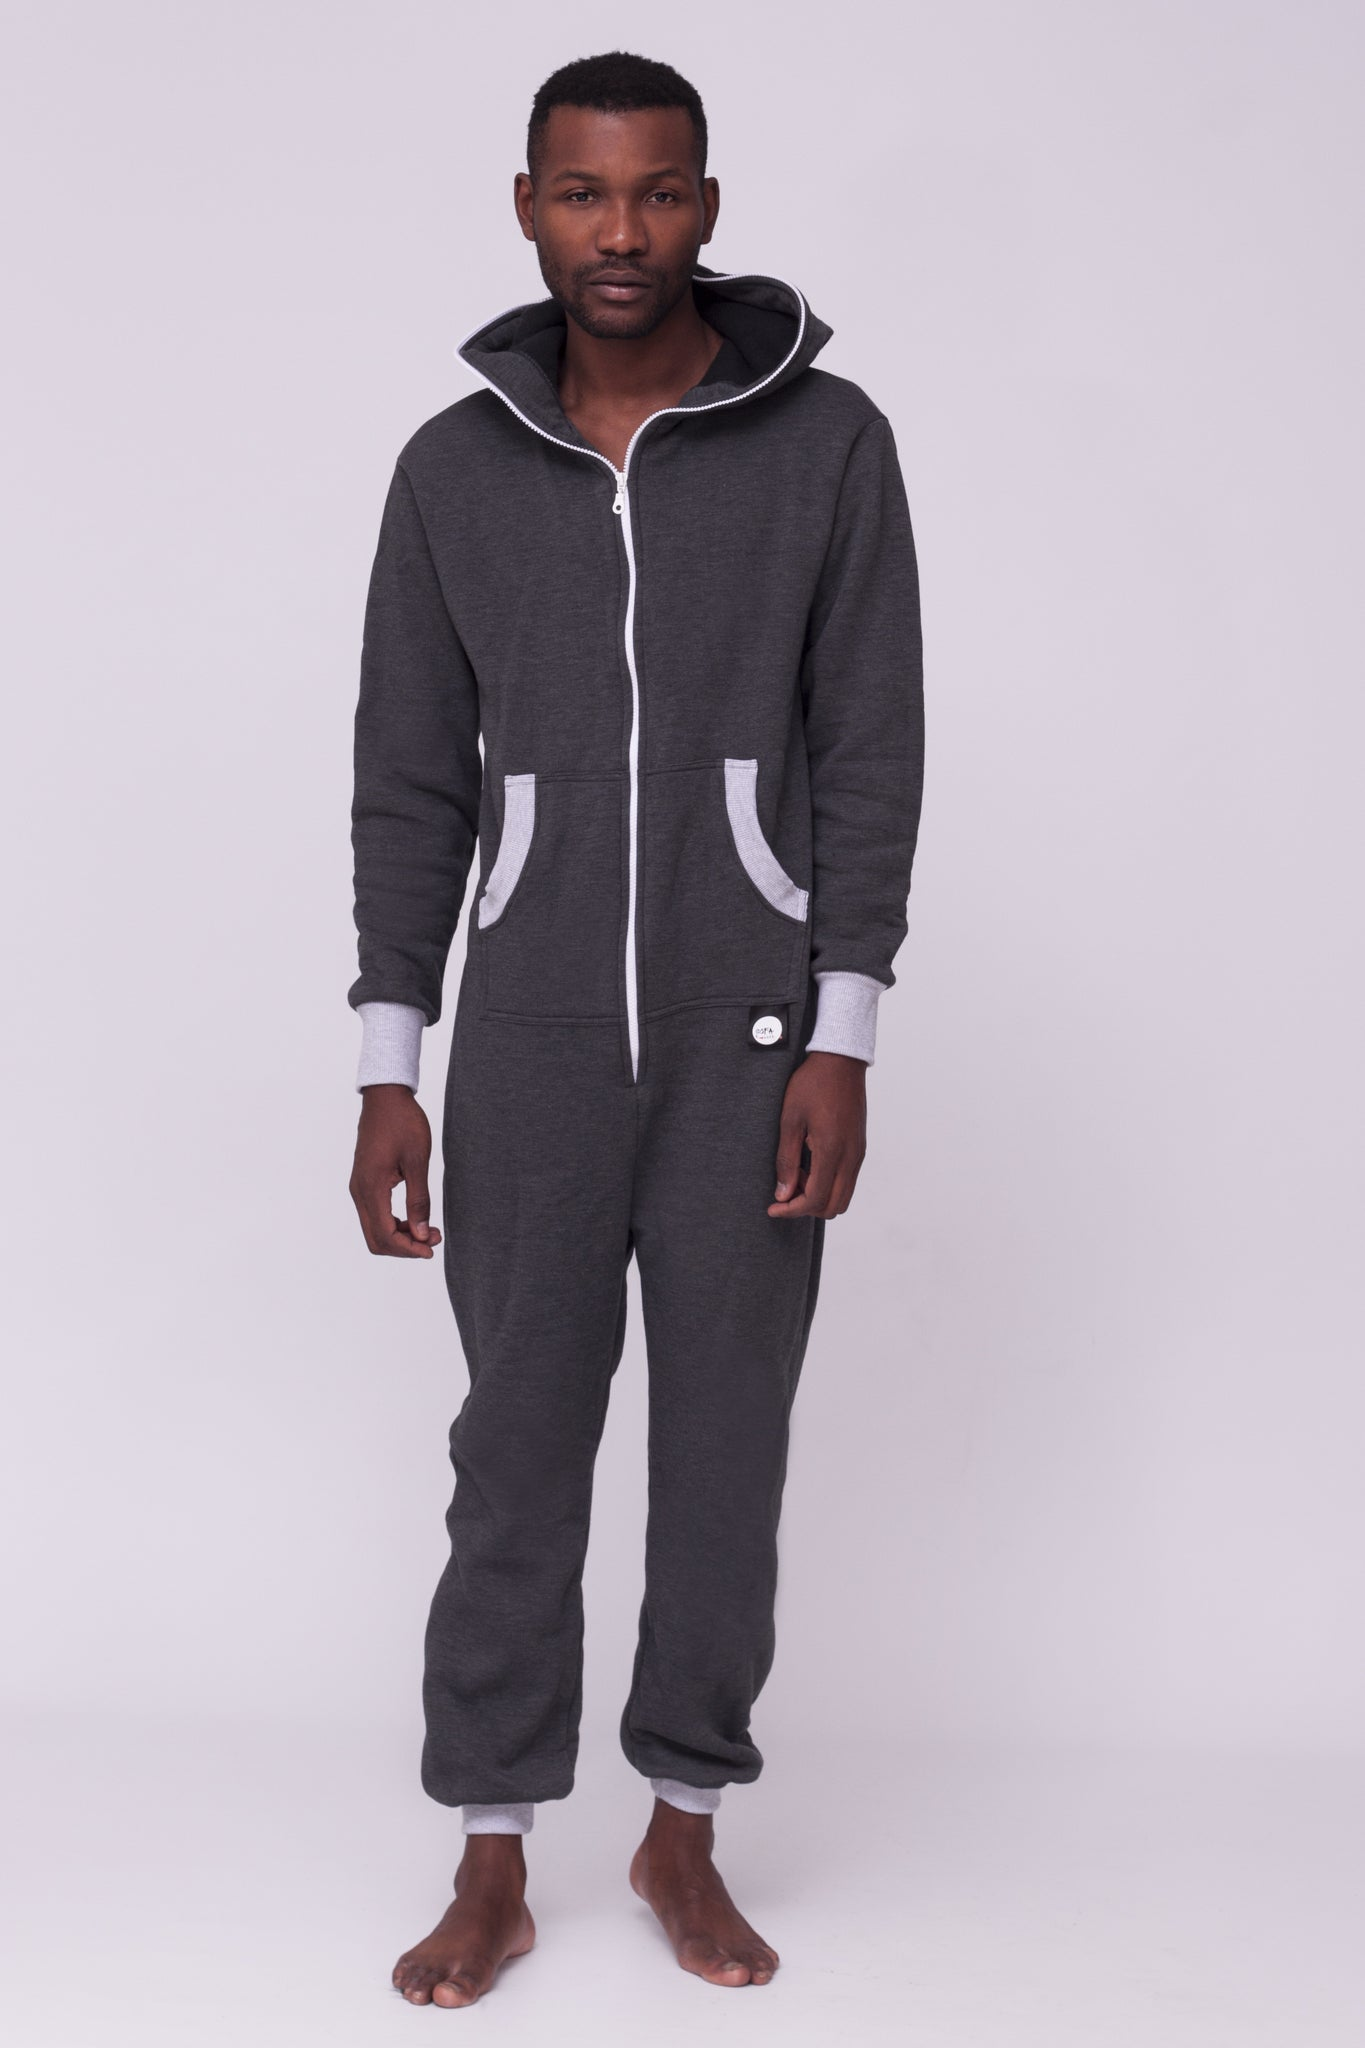 Sofa Killer dark grey onesie with grey cuff